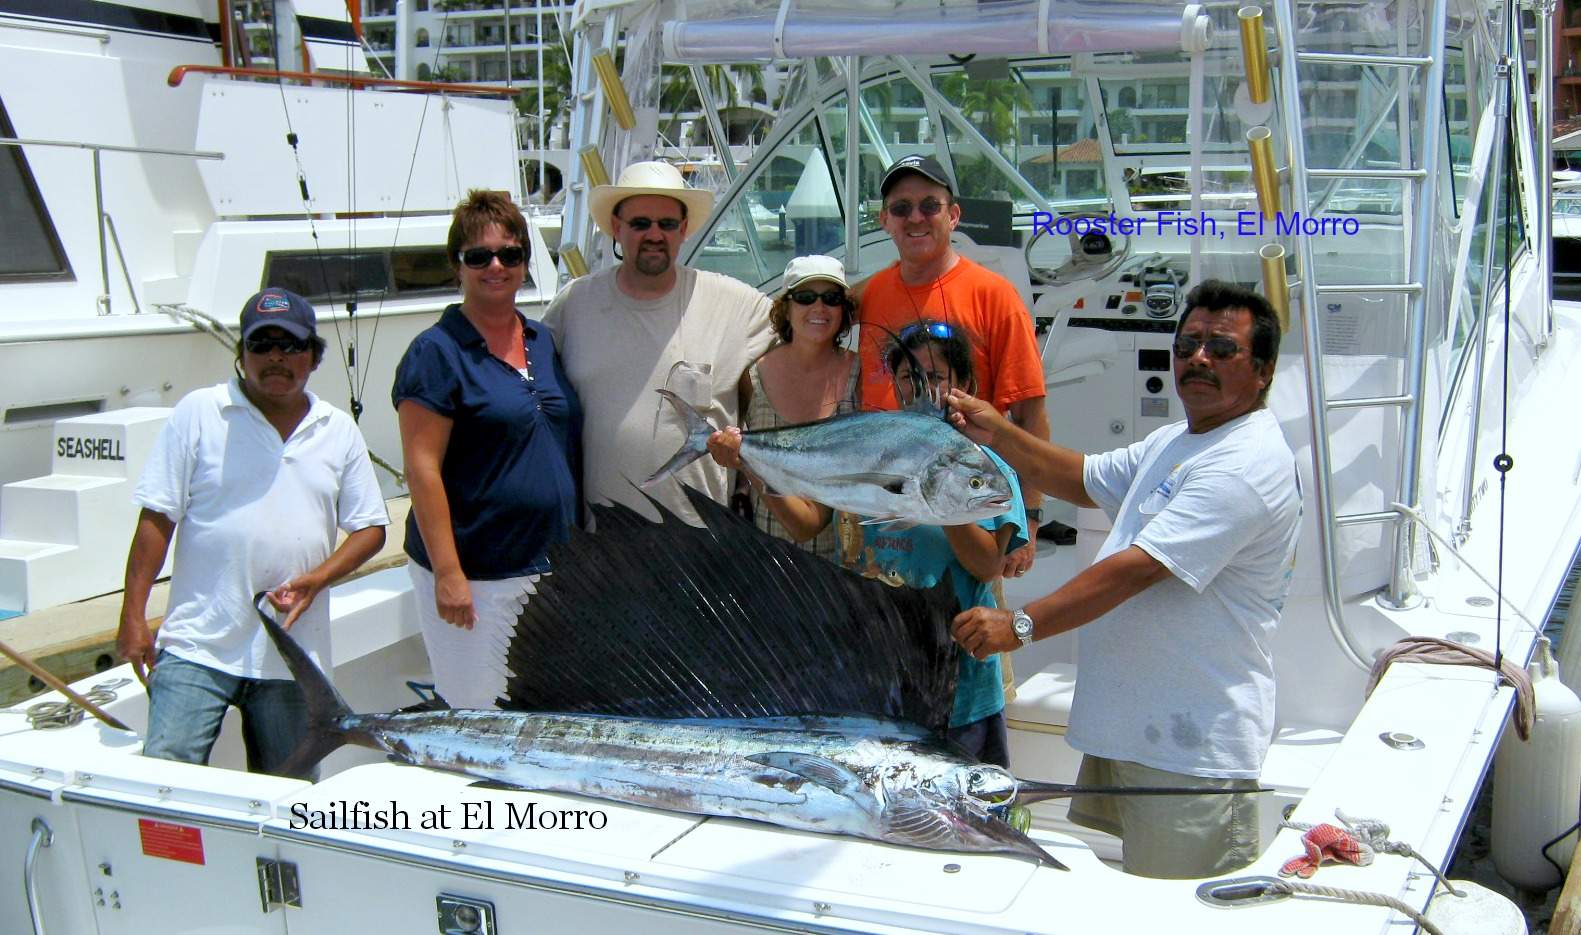 07 18 2013 El Morro Sailfish Rooster